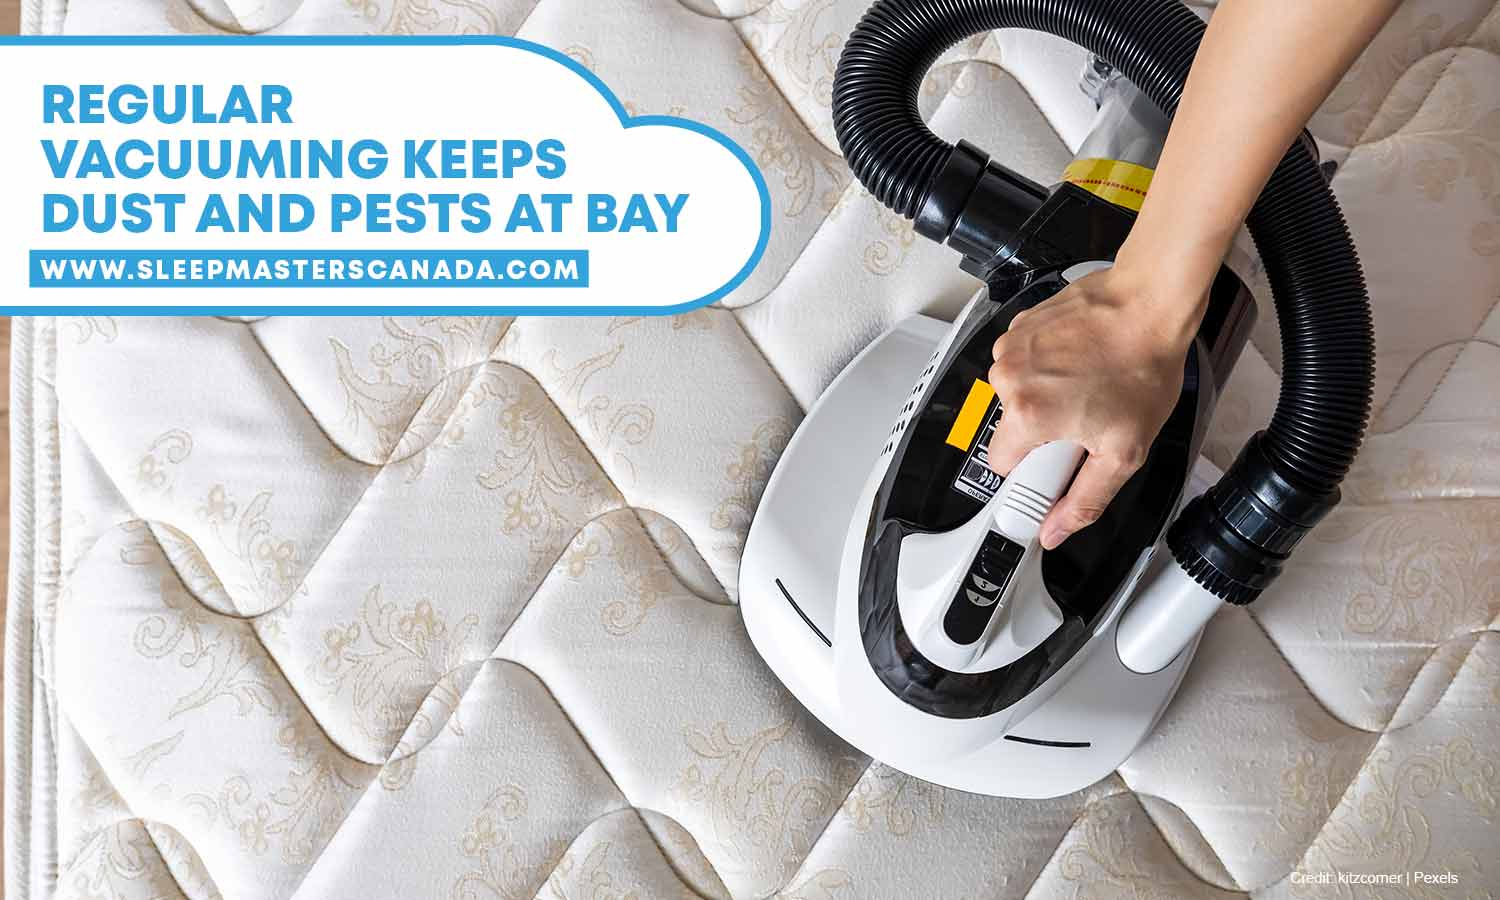 Regular vacuuming keeps dust and pests at baye